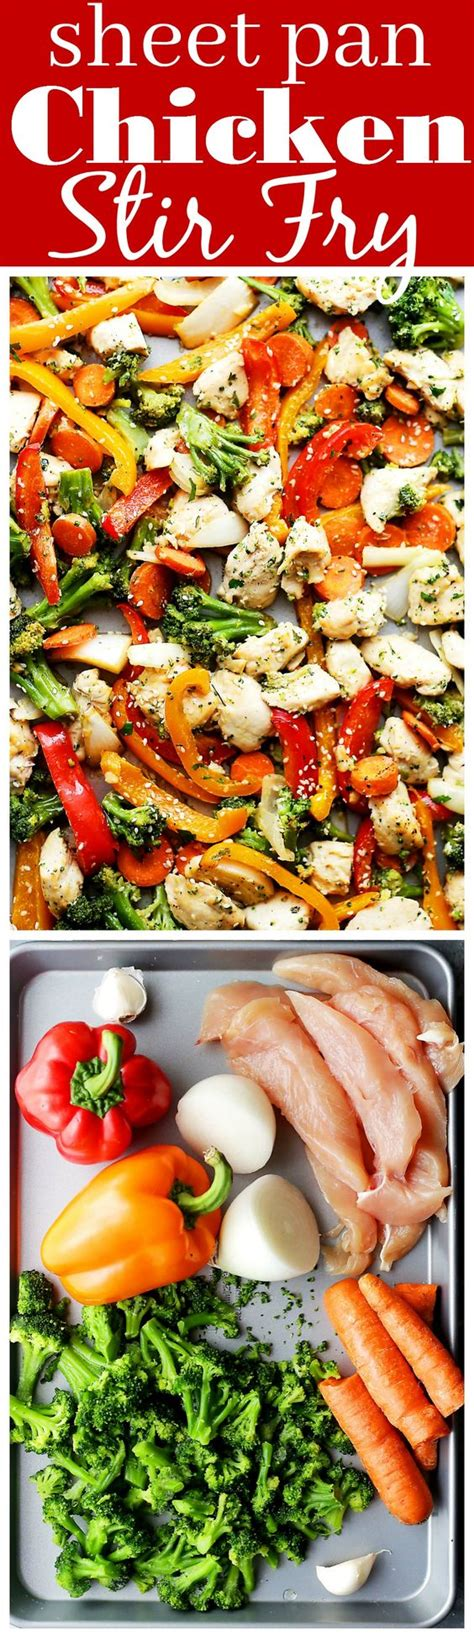 30 minute meals recipes easy delicious lunch dinner